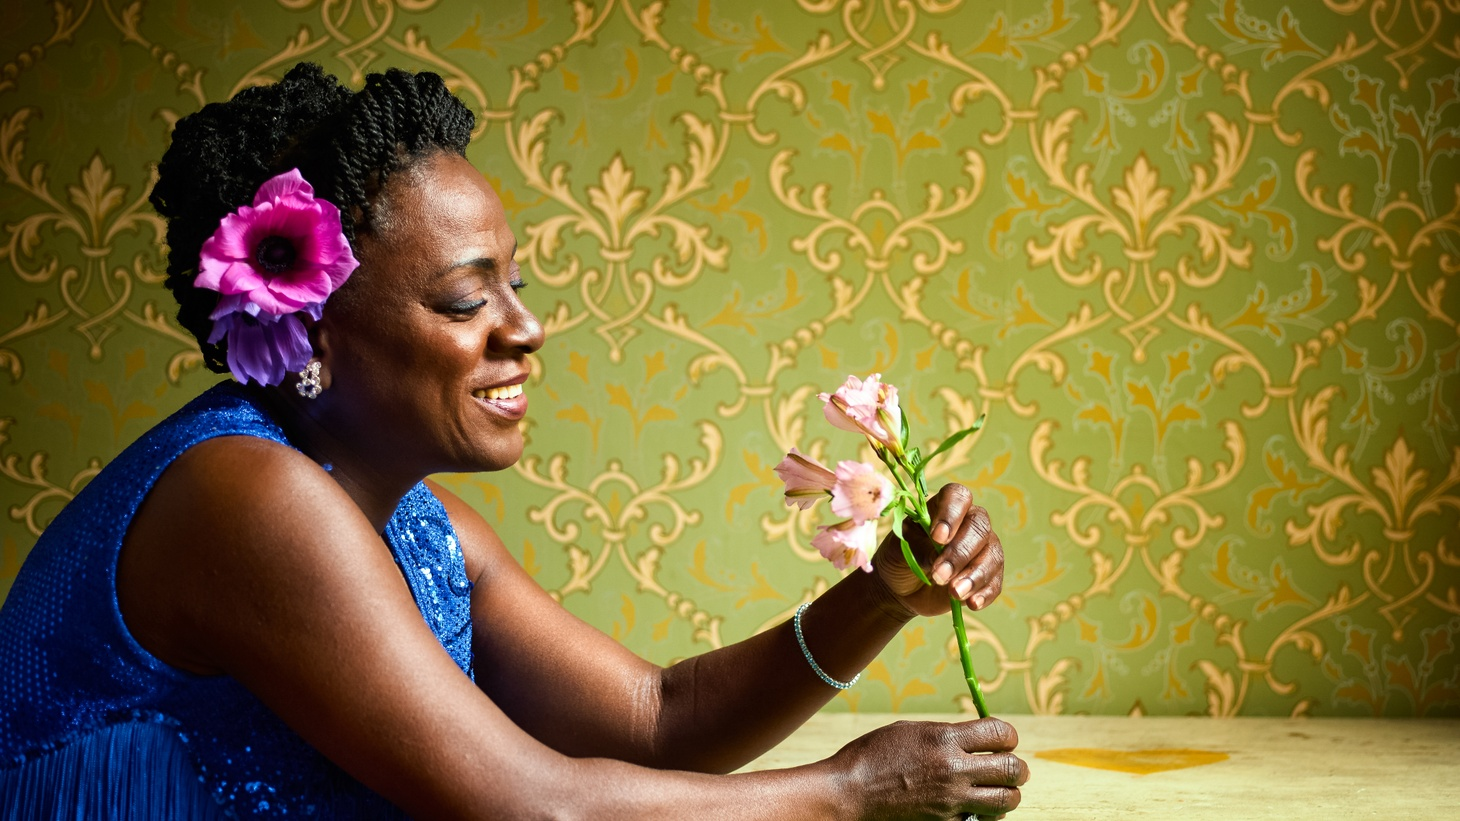 We recently received an unexpected gift: Sharon Jones' last studio album which was recorded while battling cancer. Capturing her strength, vocal prowess and her power as a performer, the album is a testament to Jones' life and career.